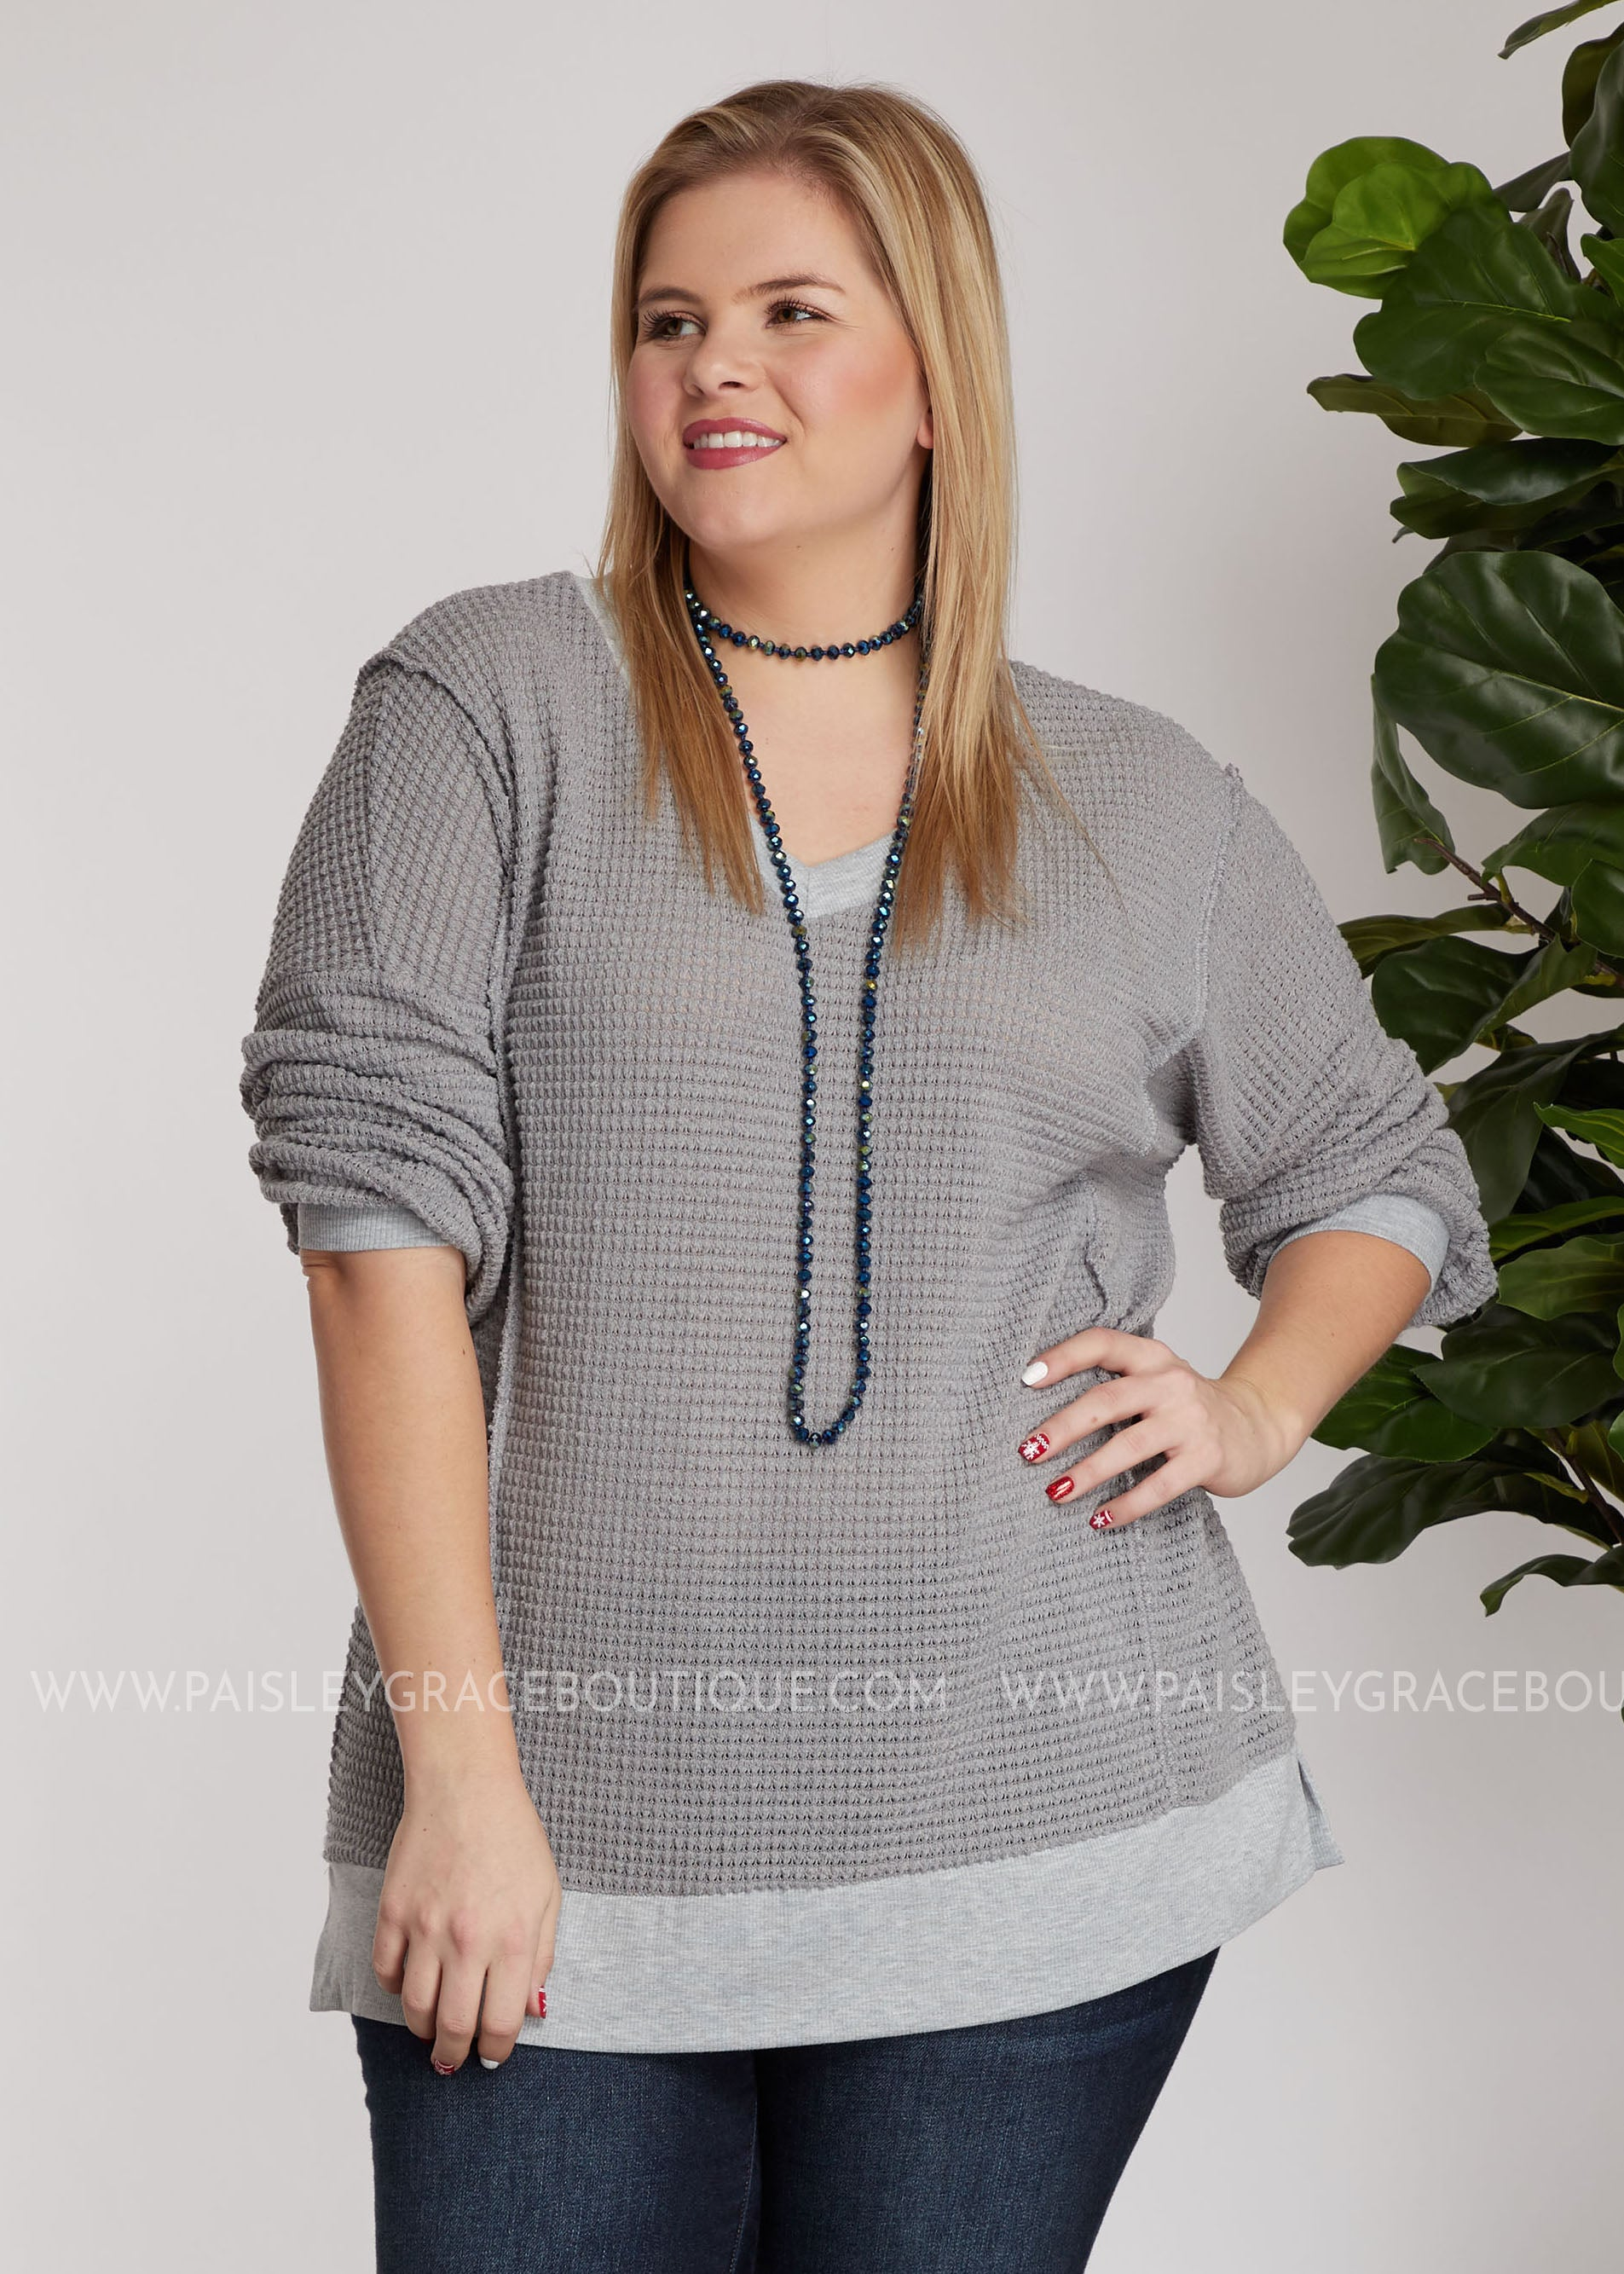 Worry Free Top - FINAL SALE